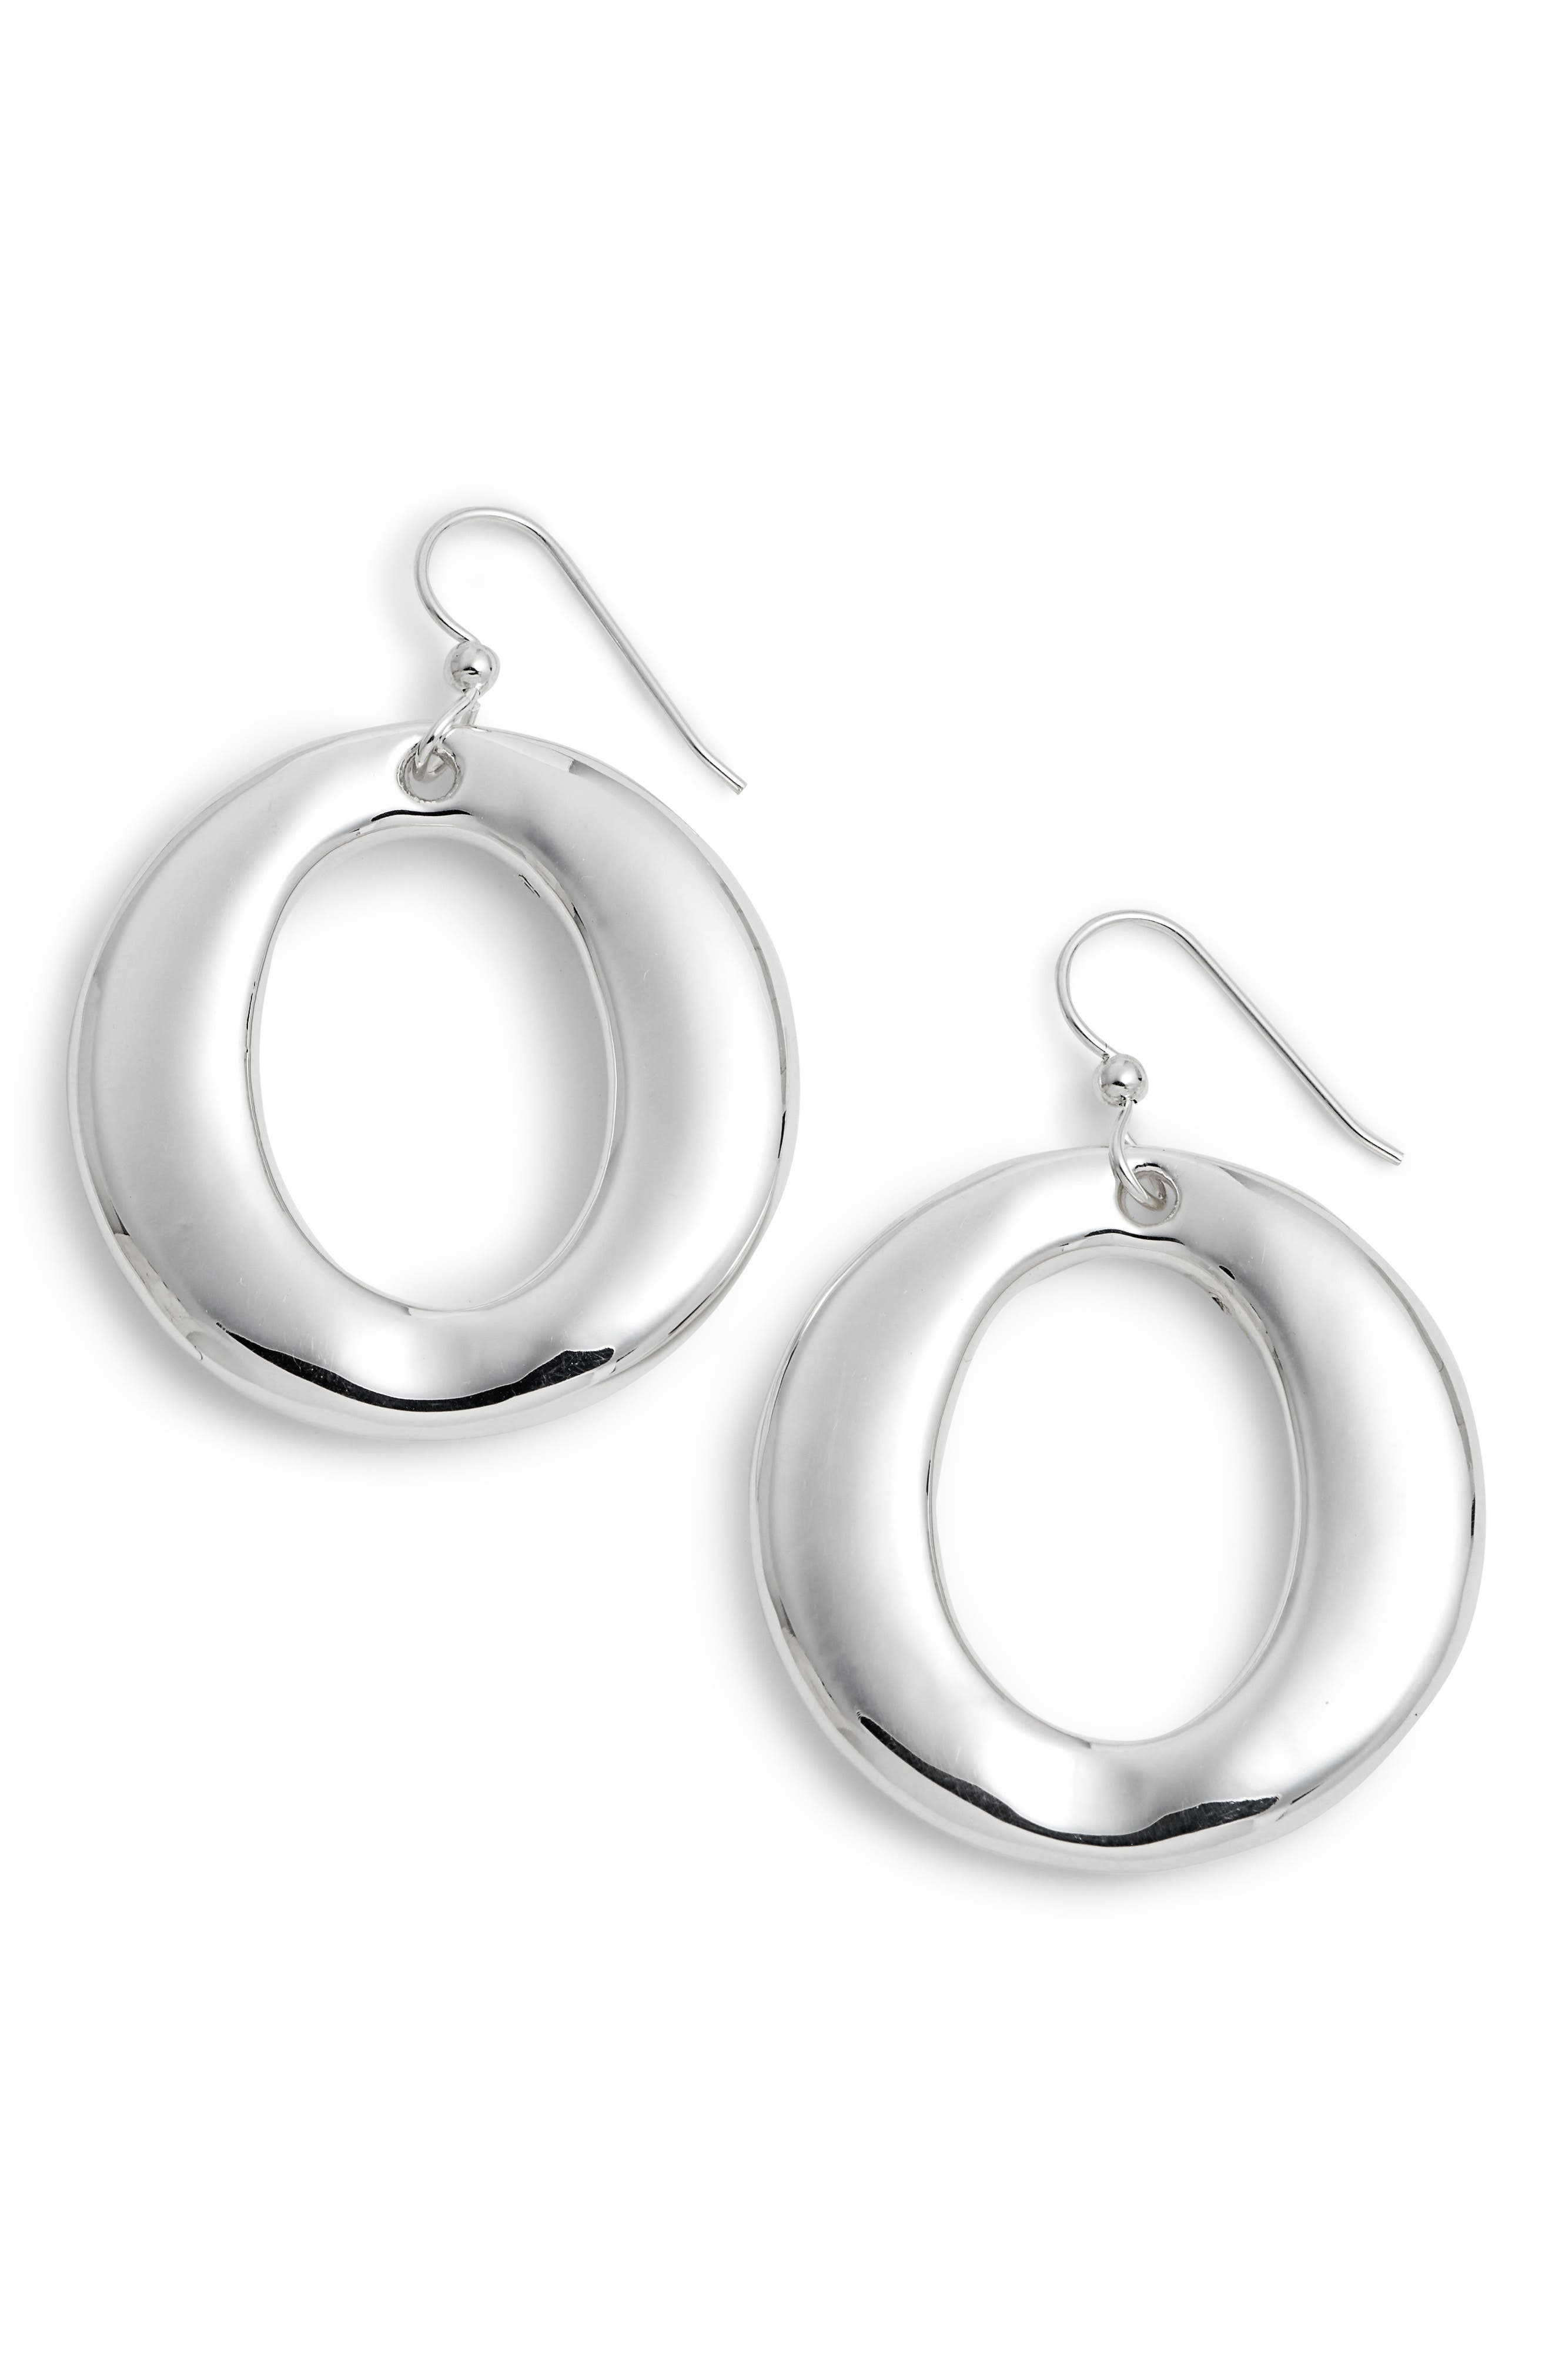 Round Open Wire Hoop Earrings,                         Main,                         color, SILVER